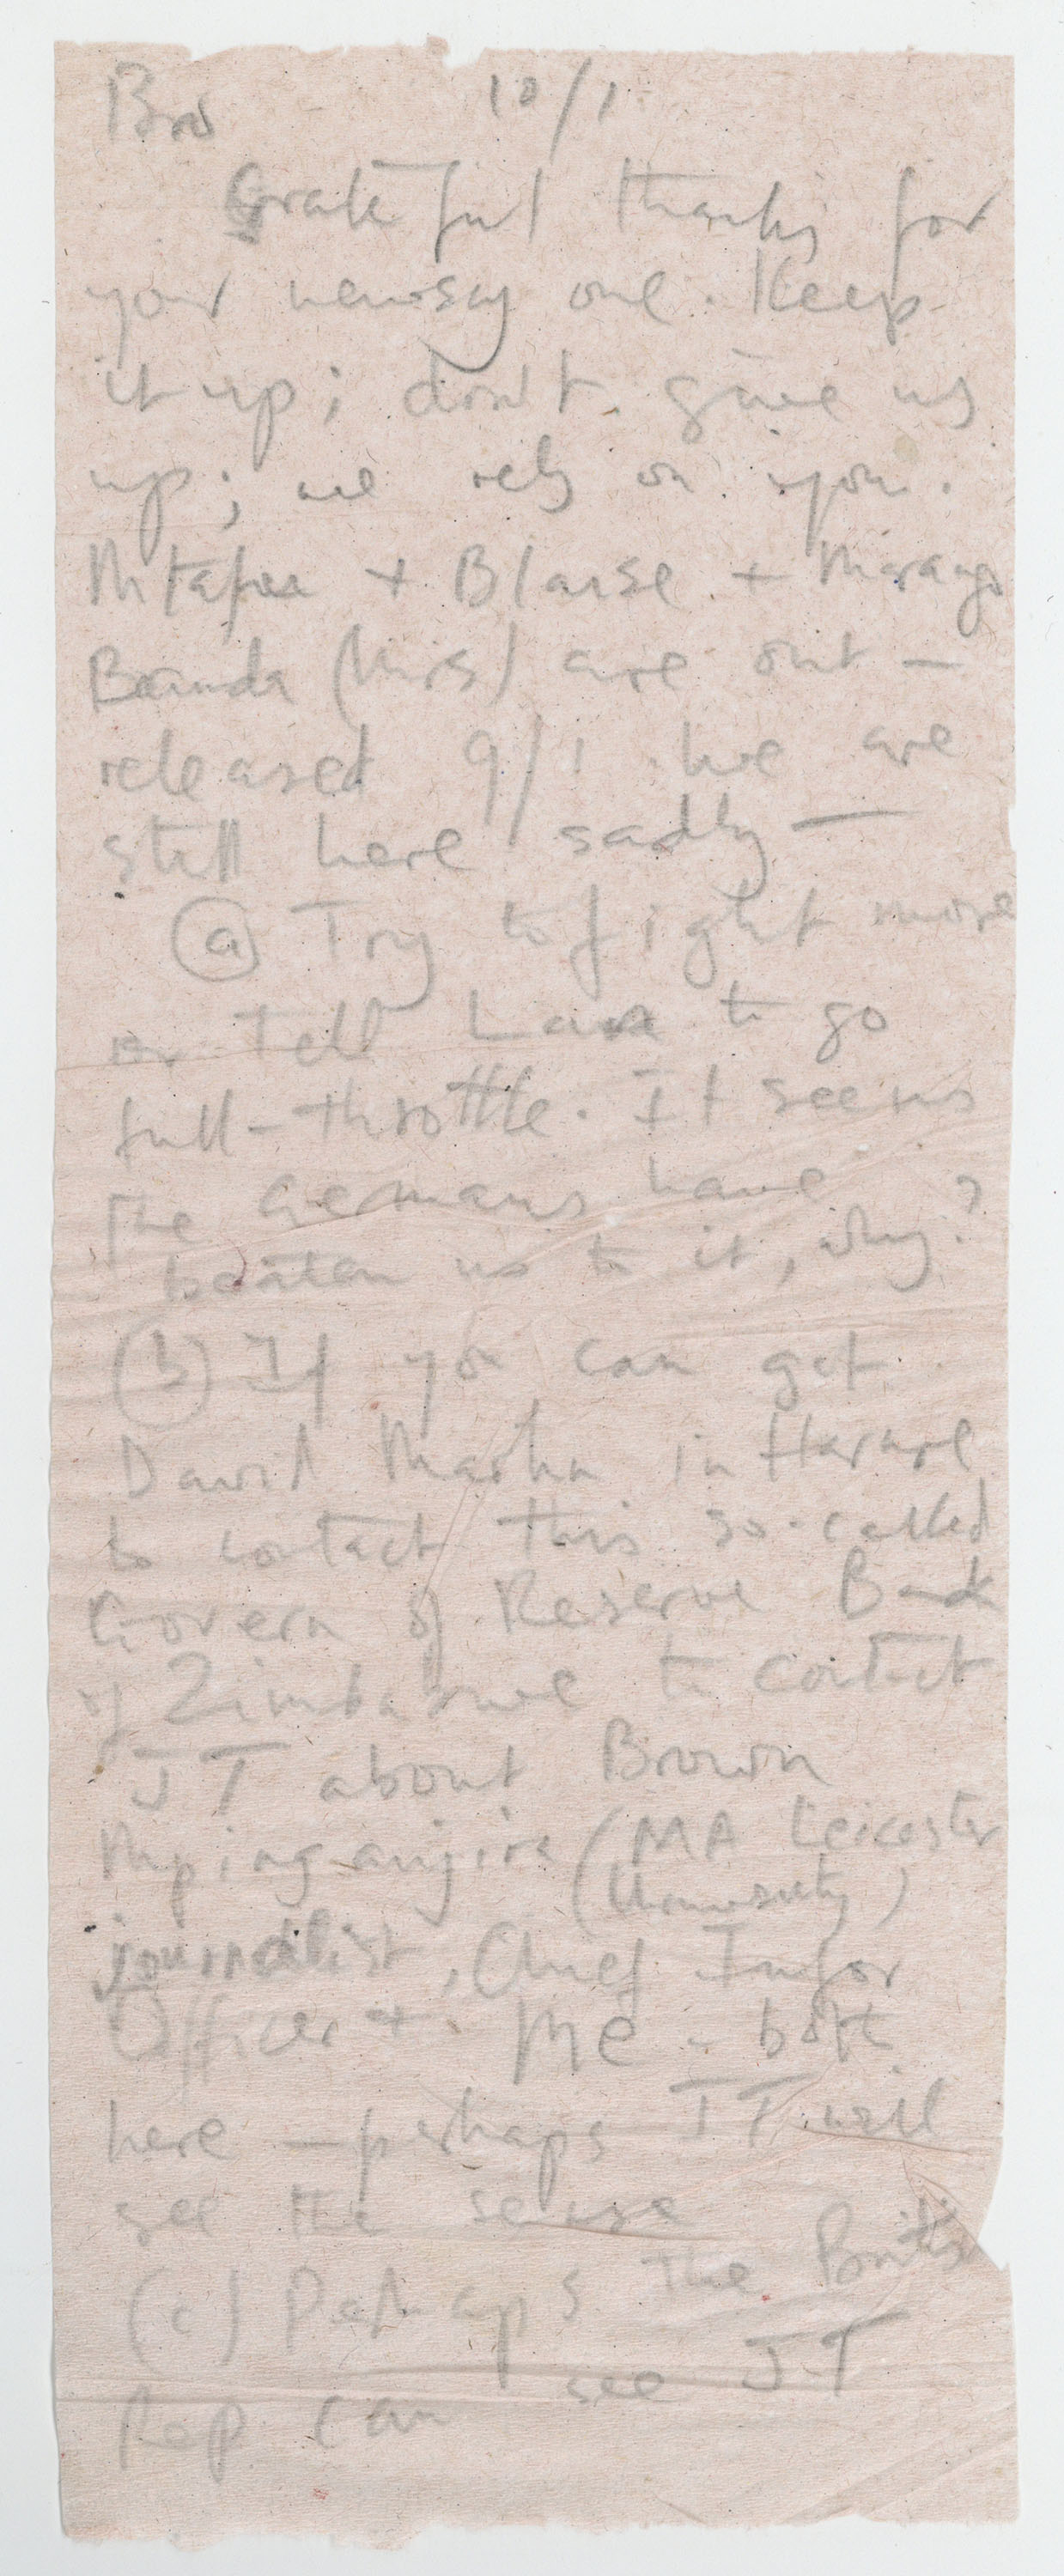 Extract from a letter written on toilet tissue paper by Jack Mapanje to David Kerr whilst a prisoner in Mikuyu Prison in Malawi